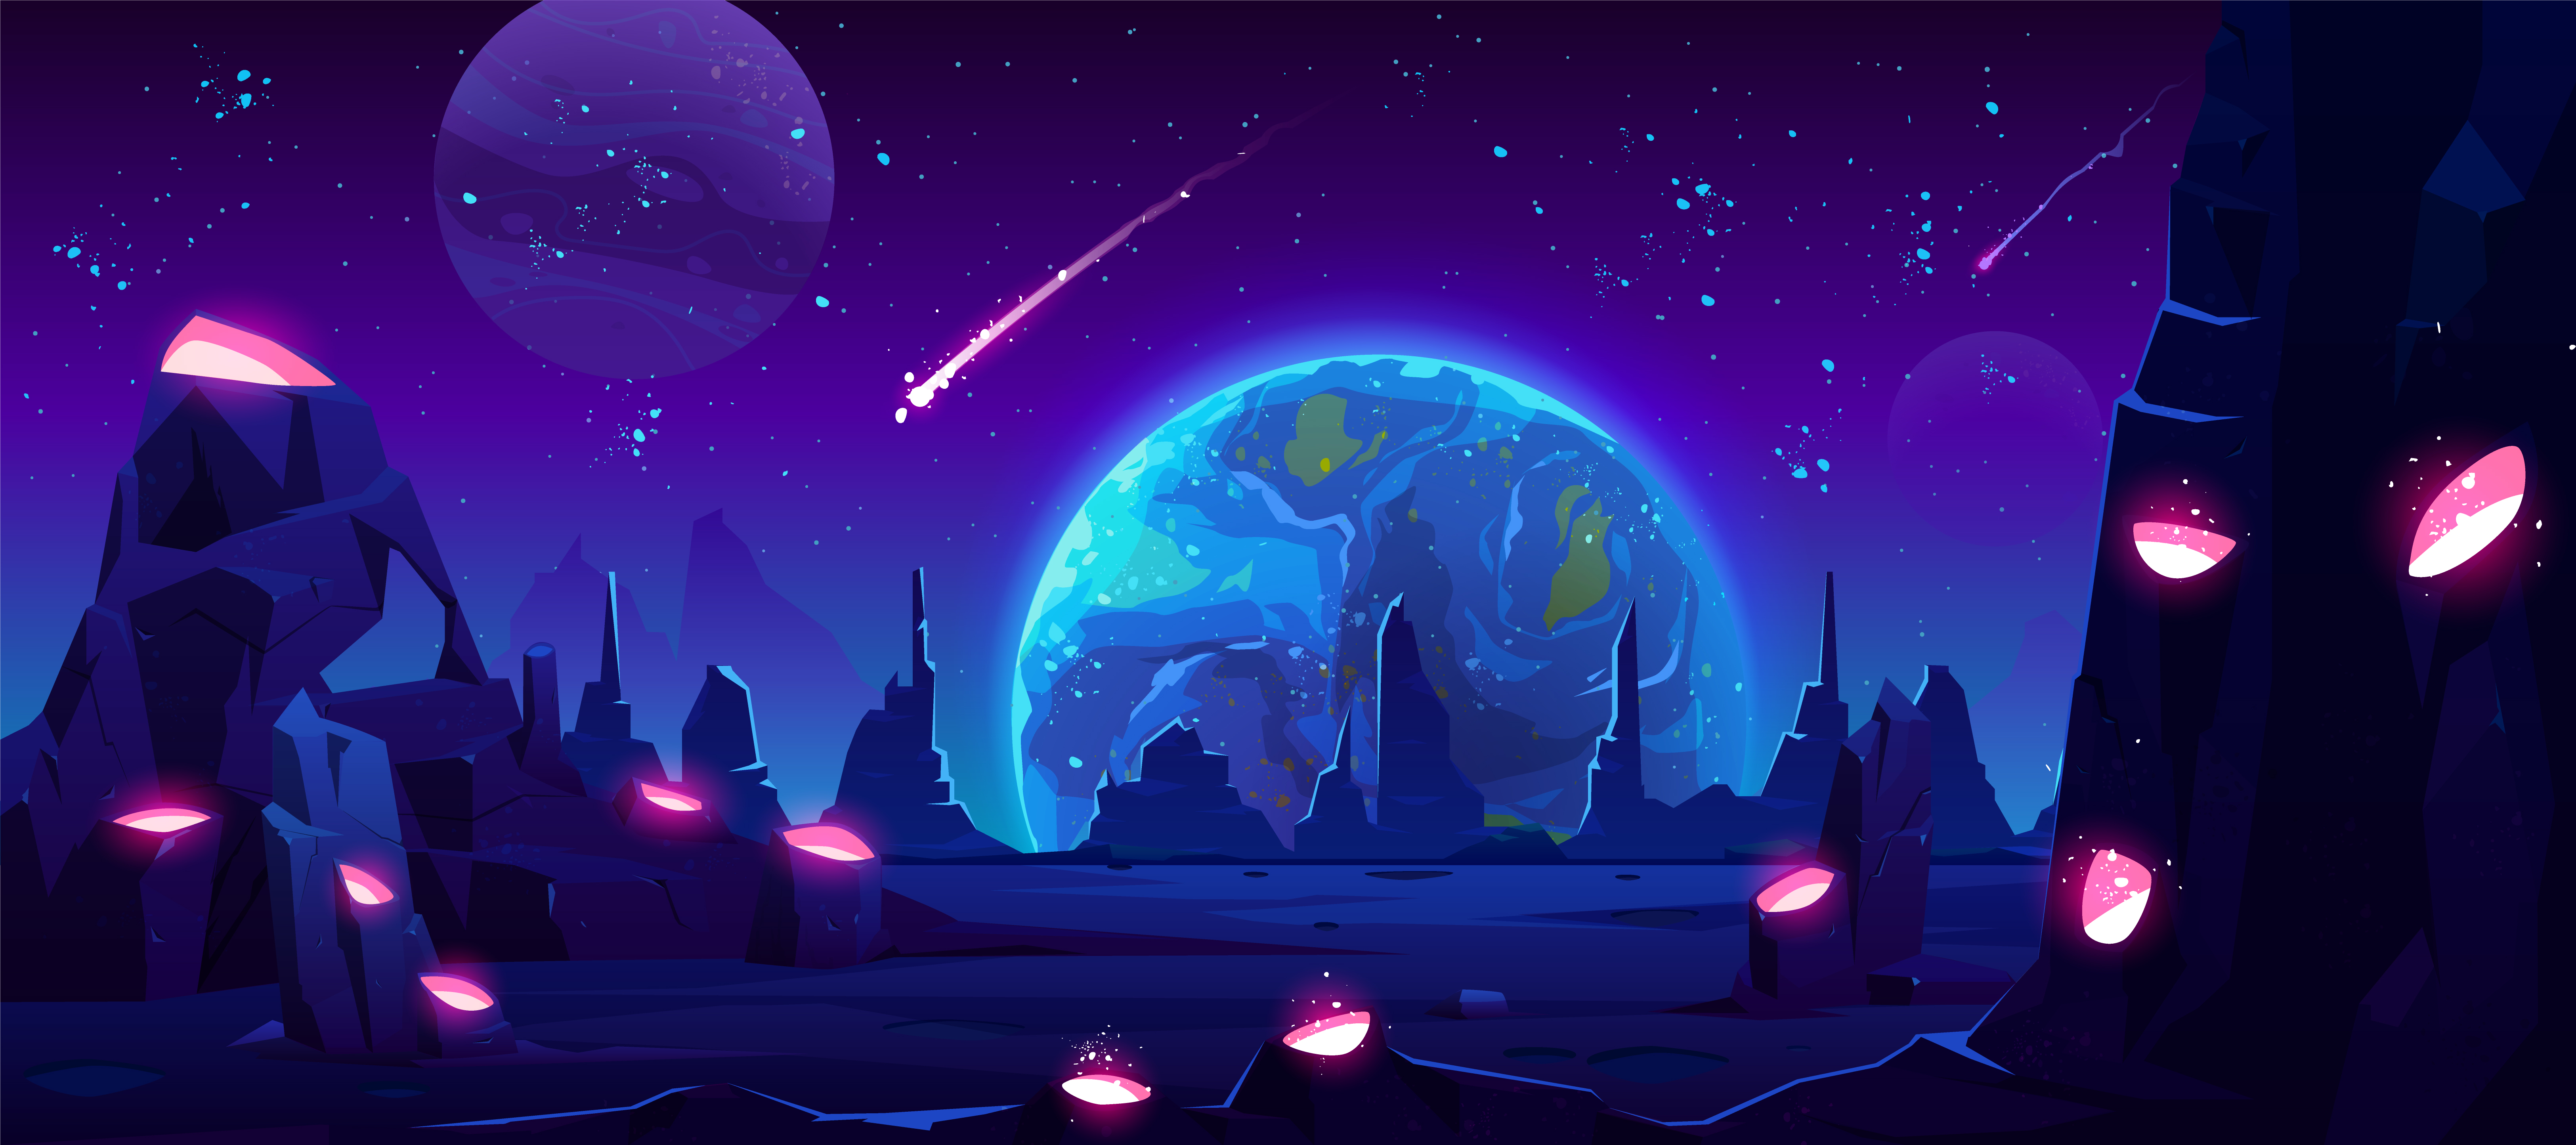 Earth view from alien planet by night - Designed by vectorpouch / Freepik